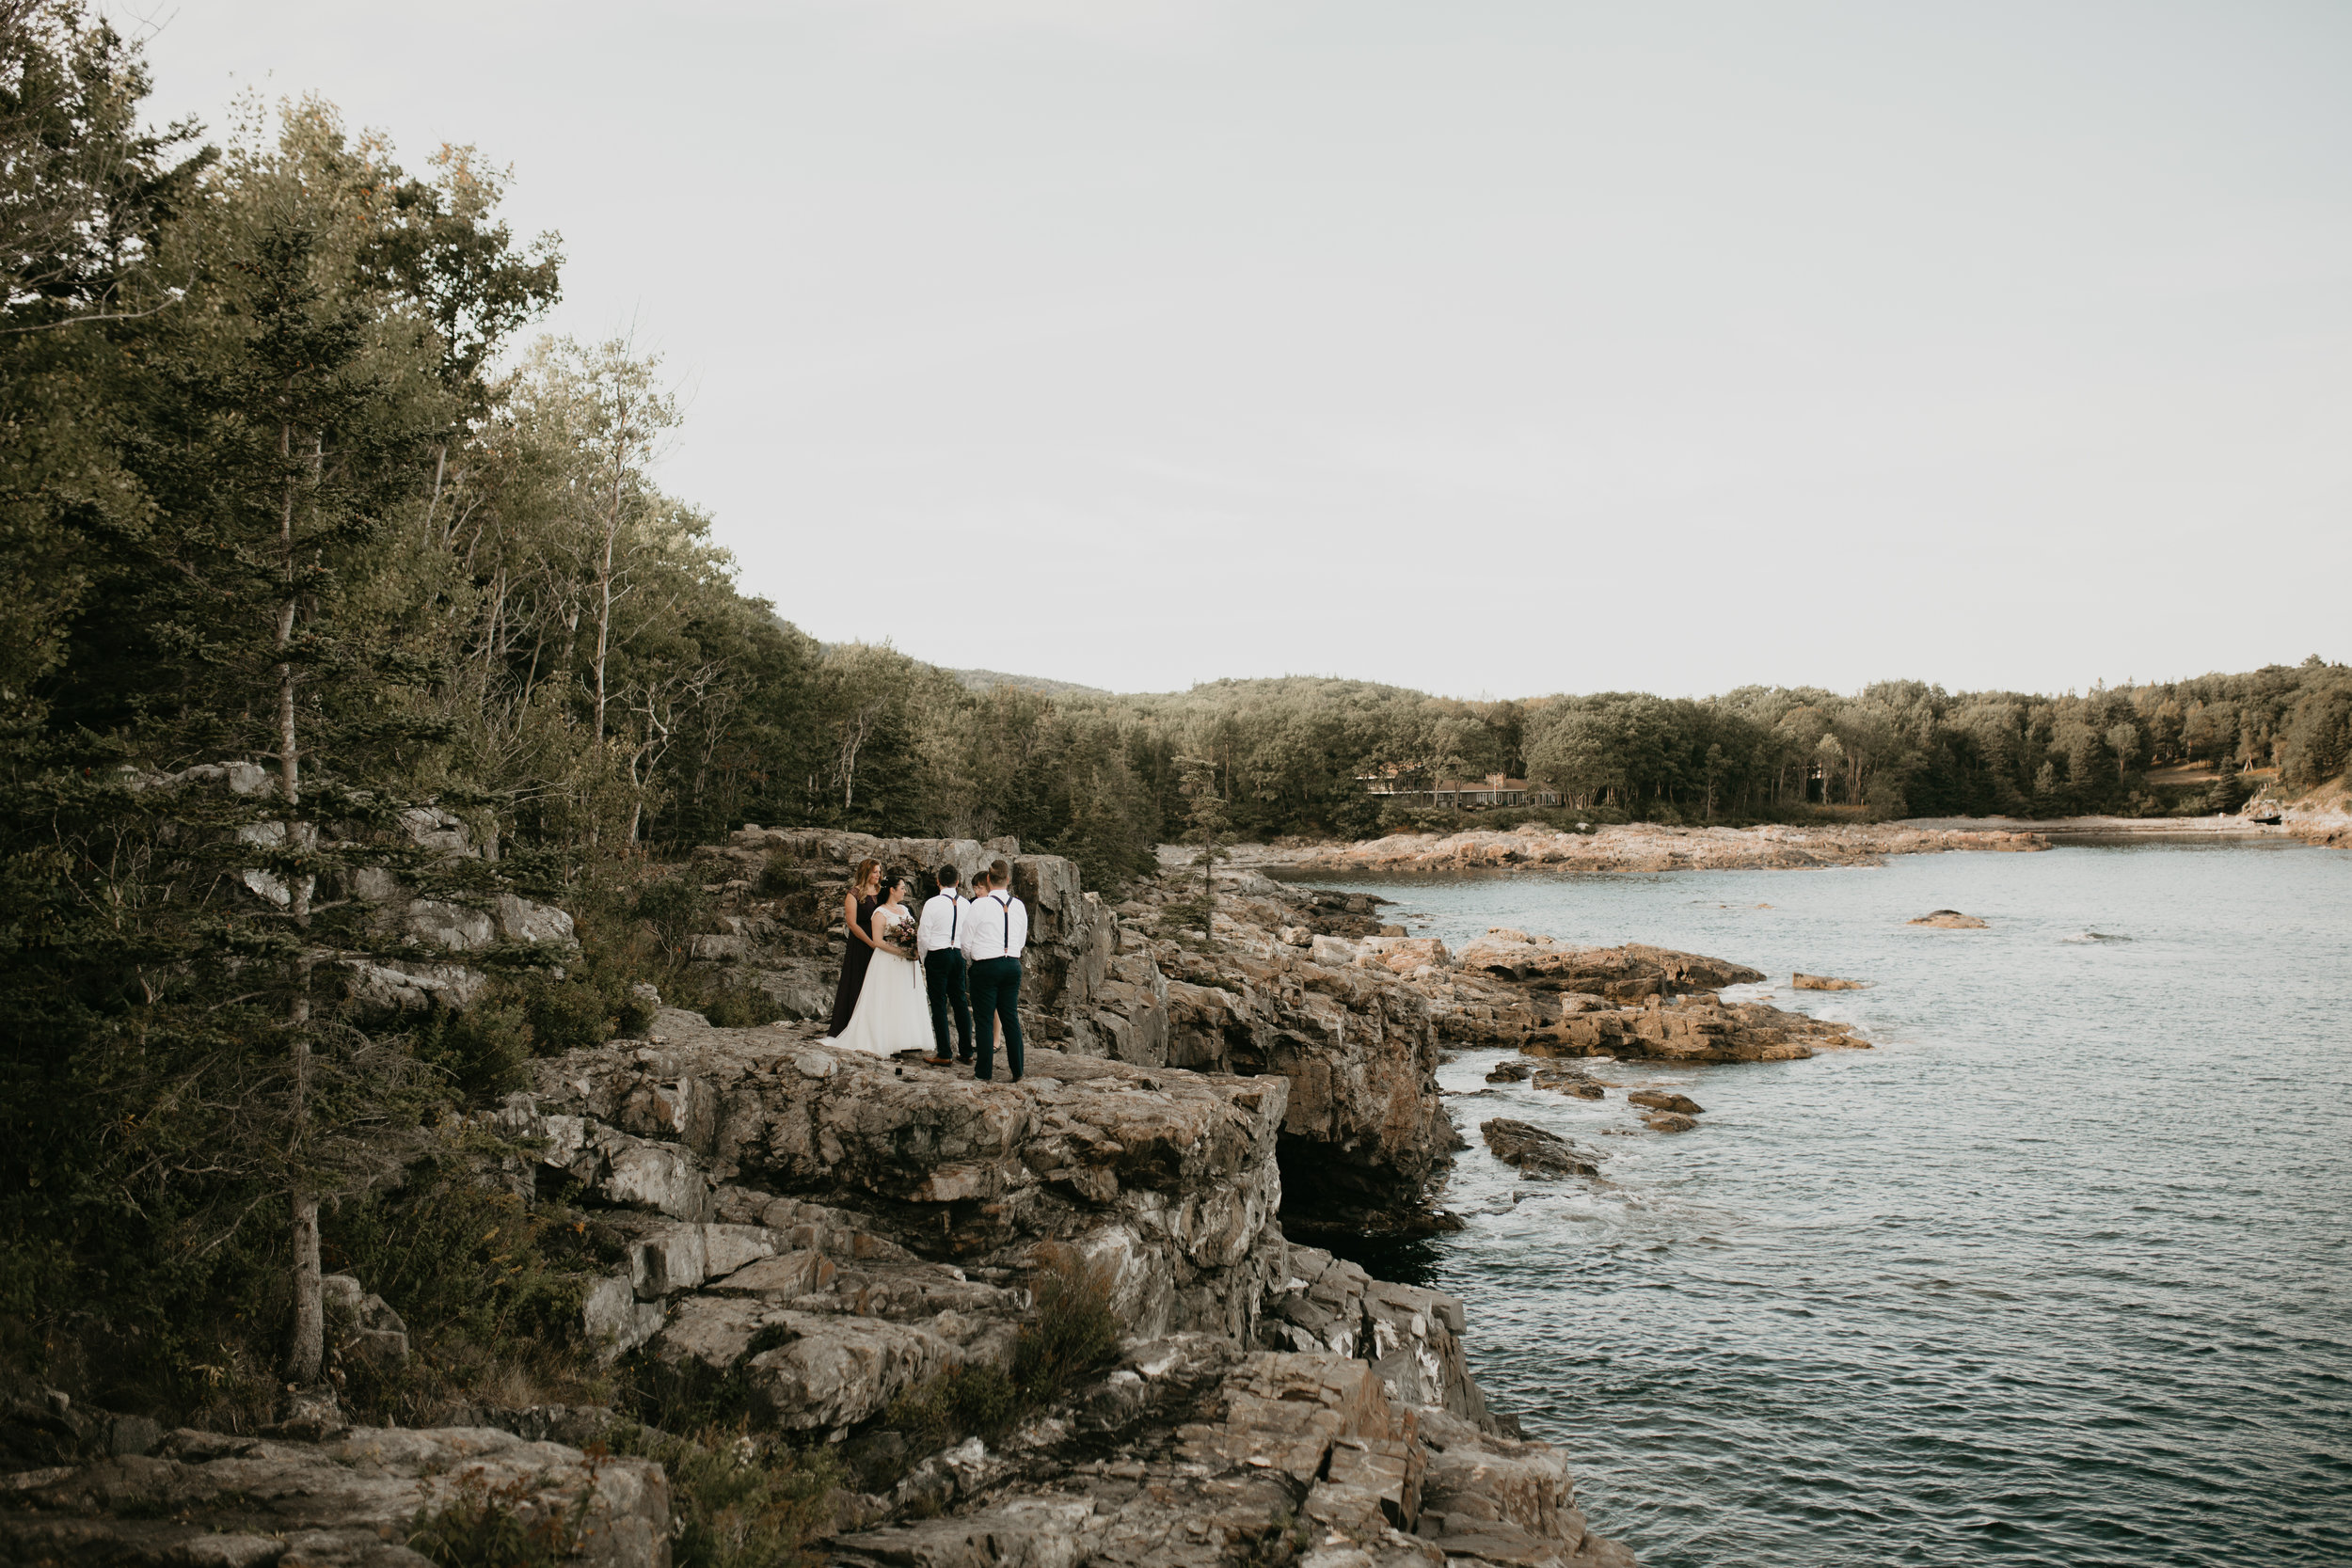 nicole-daacke-photography-acadia-national-park-elopement-photographer-adventurous-schoonic-head-otter-cliffs-bar-harbor-adventurous-elopement-photos-in-maine-intimate-wedding-photography-2.jpg